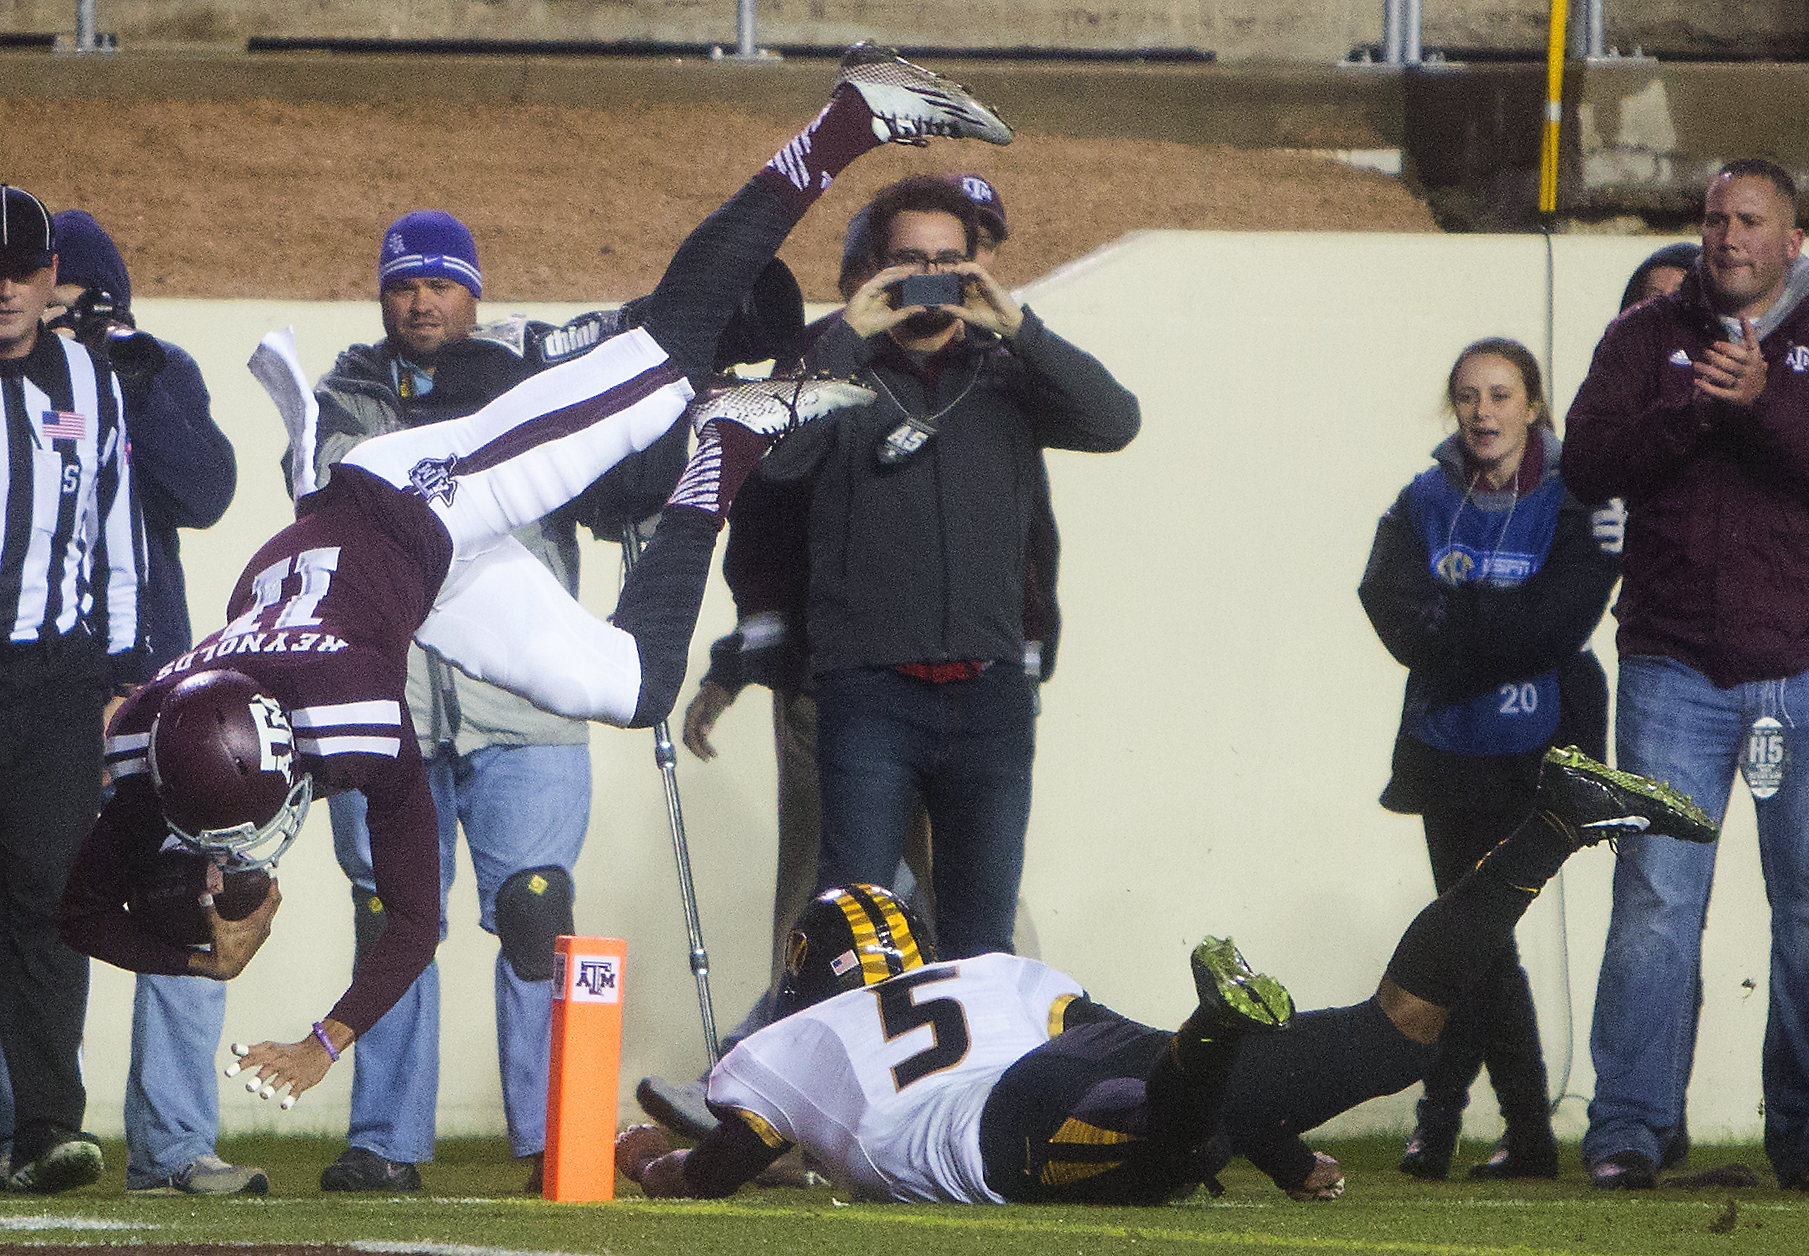 Aggies Fall To Mizzou After Defense Falls Apart In 2nd Half Houston Chronicle